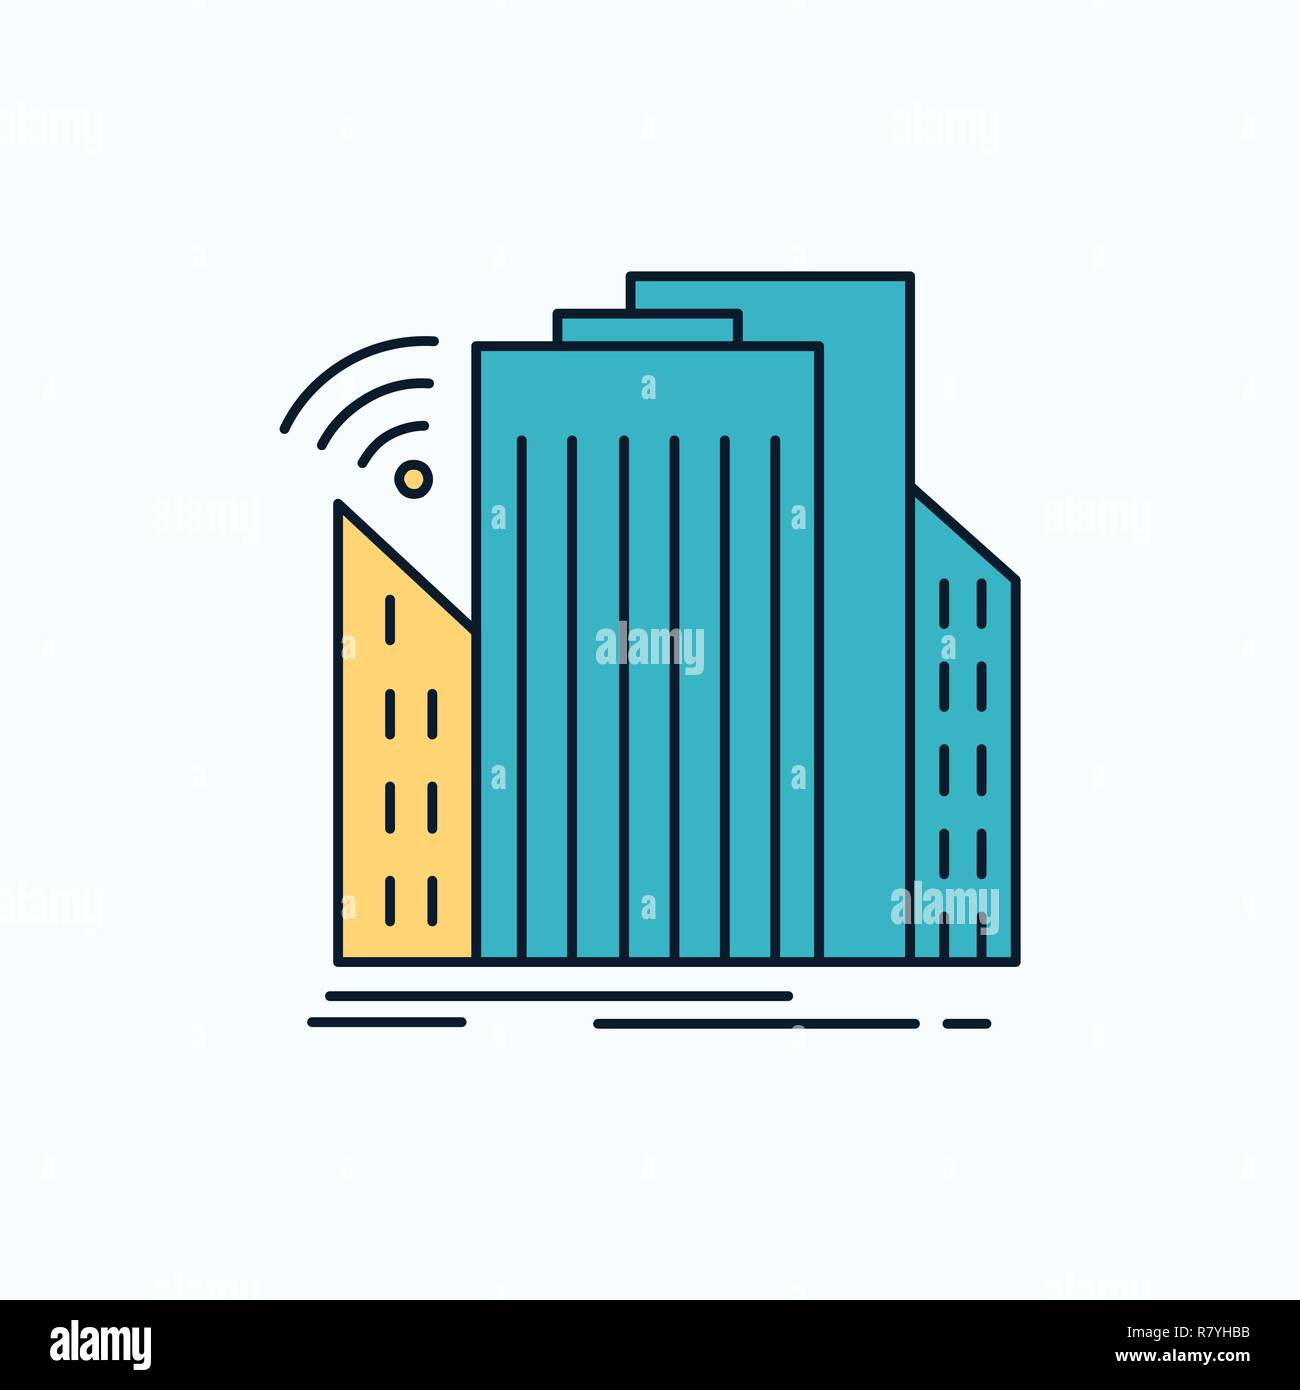 Buildings, city, sensor, smart, urban Flat Icon. green and Yellow sign and symbols for website and Mobile appliation. vector illustration - Stock Image